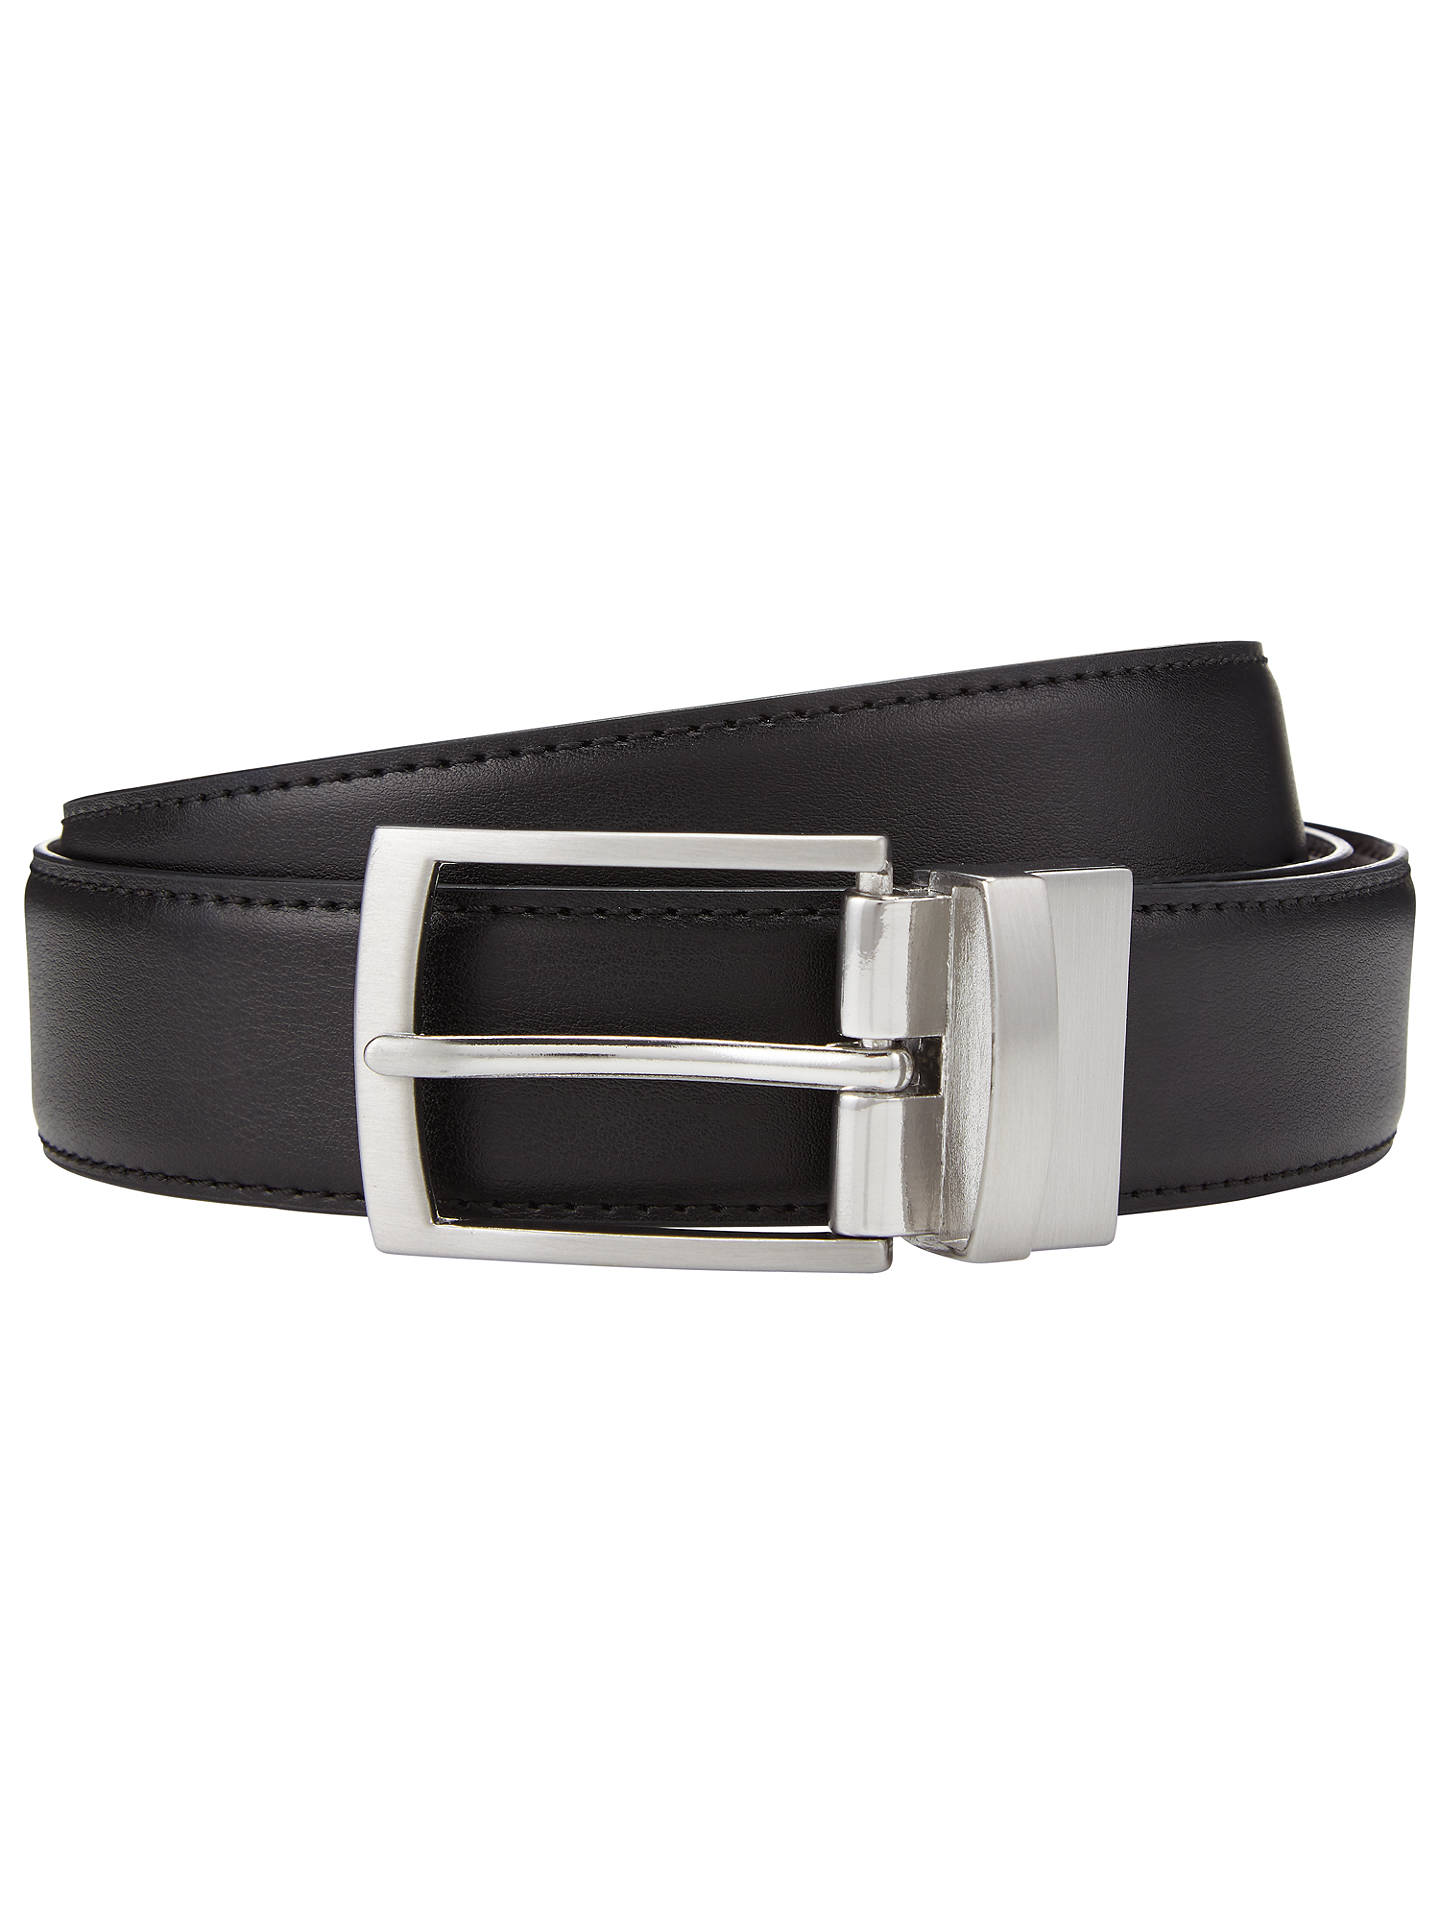 BuyJohn Lewis & Partners Reversible Leather Belt, Black/Brown, S Online at johnlewis.com